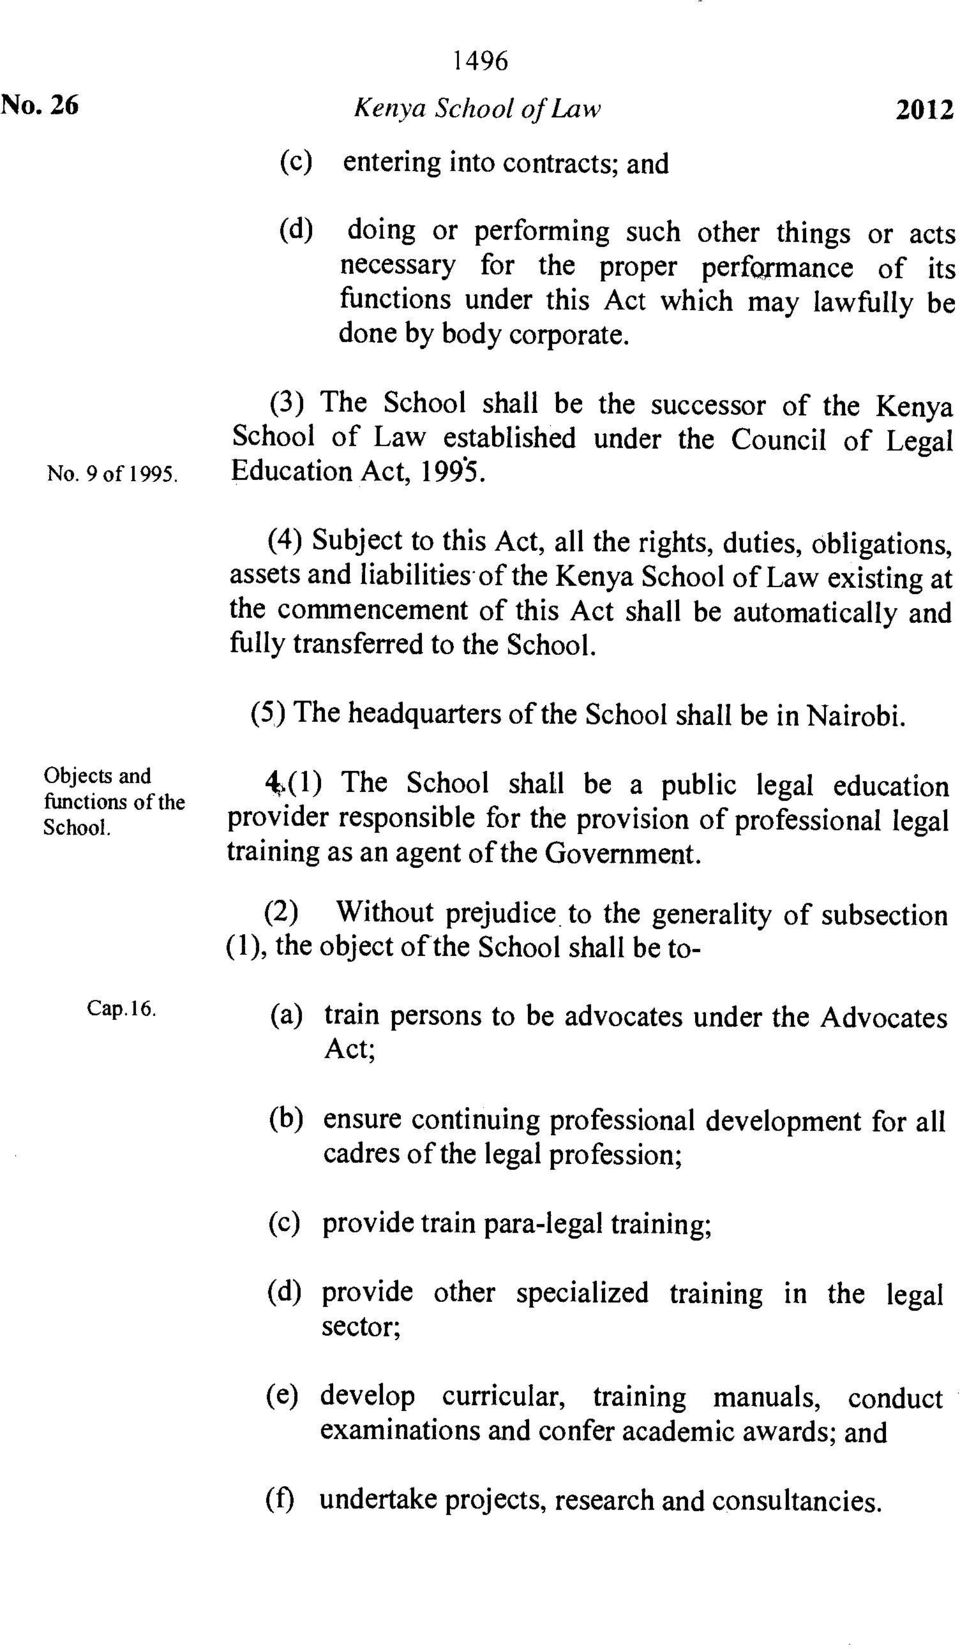 be done by body corporate. No. 9 of 1995. (3) The School shall be the successor of the Kenya School of Law established under the Council of Legal Education Act, 1995.